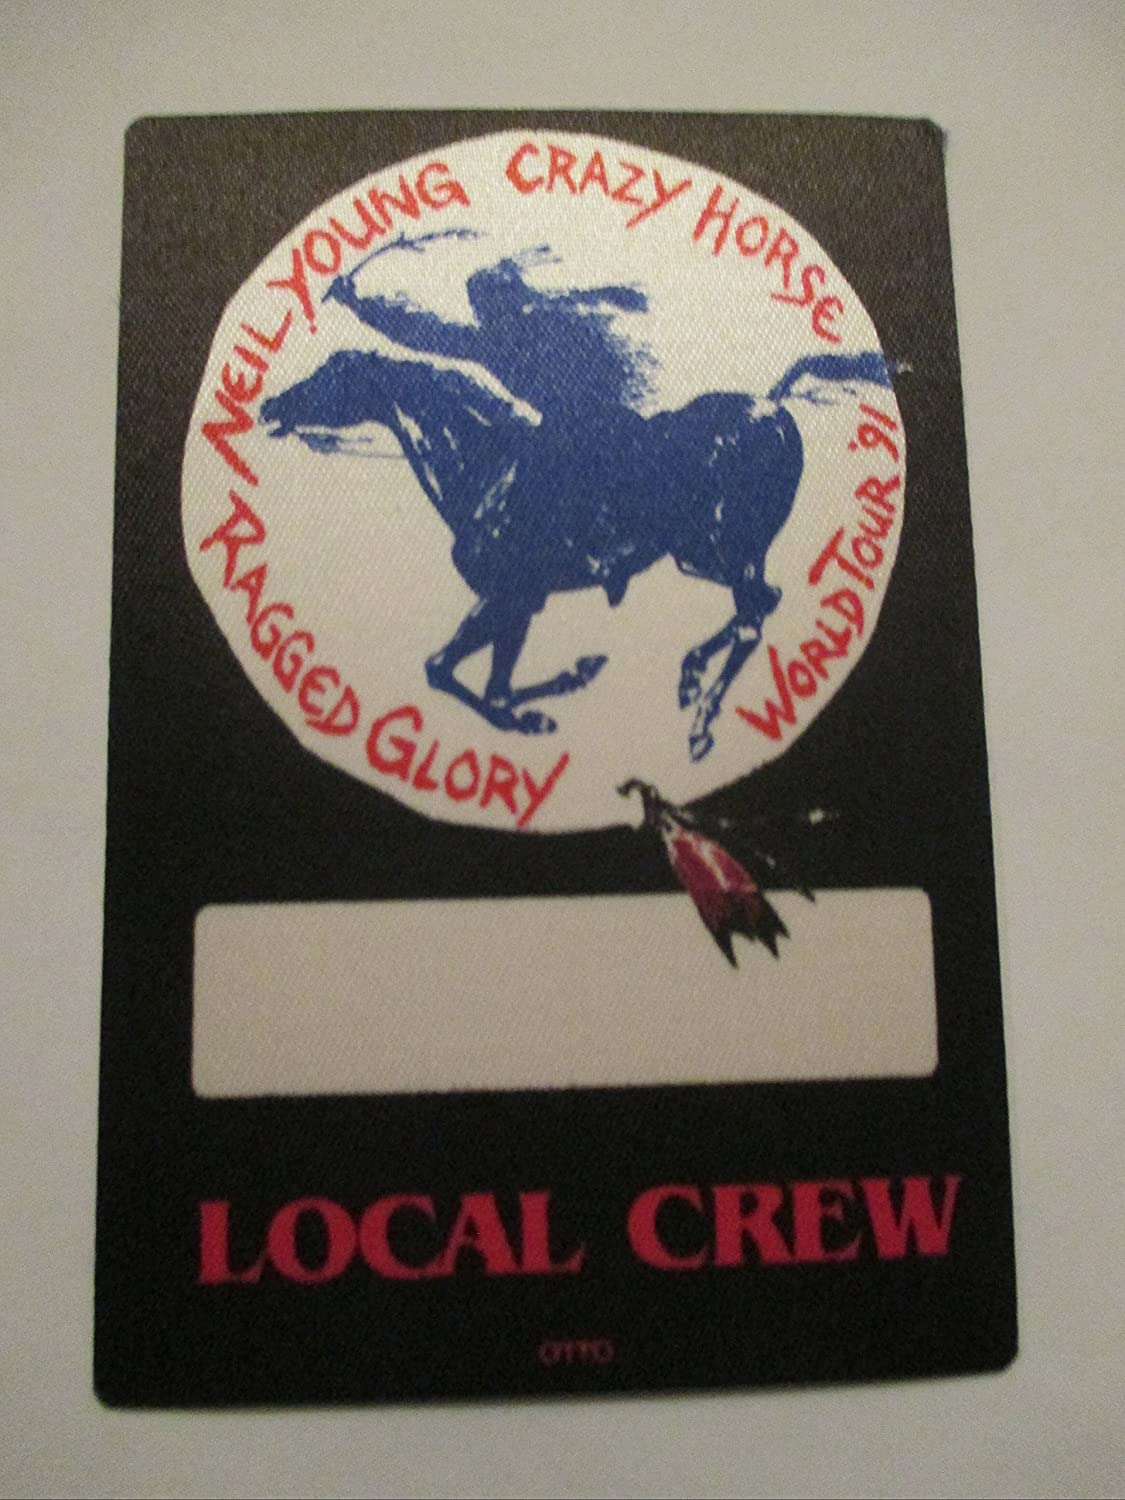 1991 Neil Young Crazy Horse Backstage Pass Ragged Glory Tour Crew